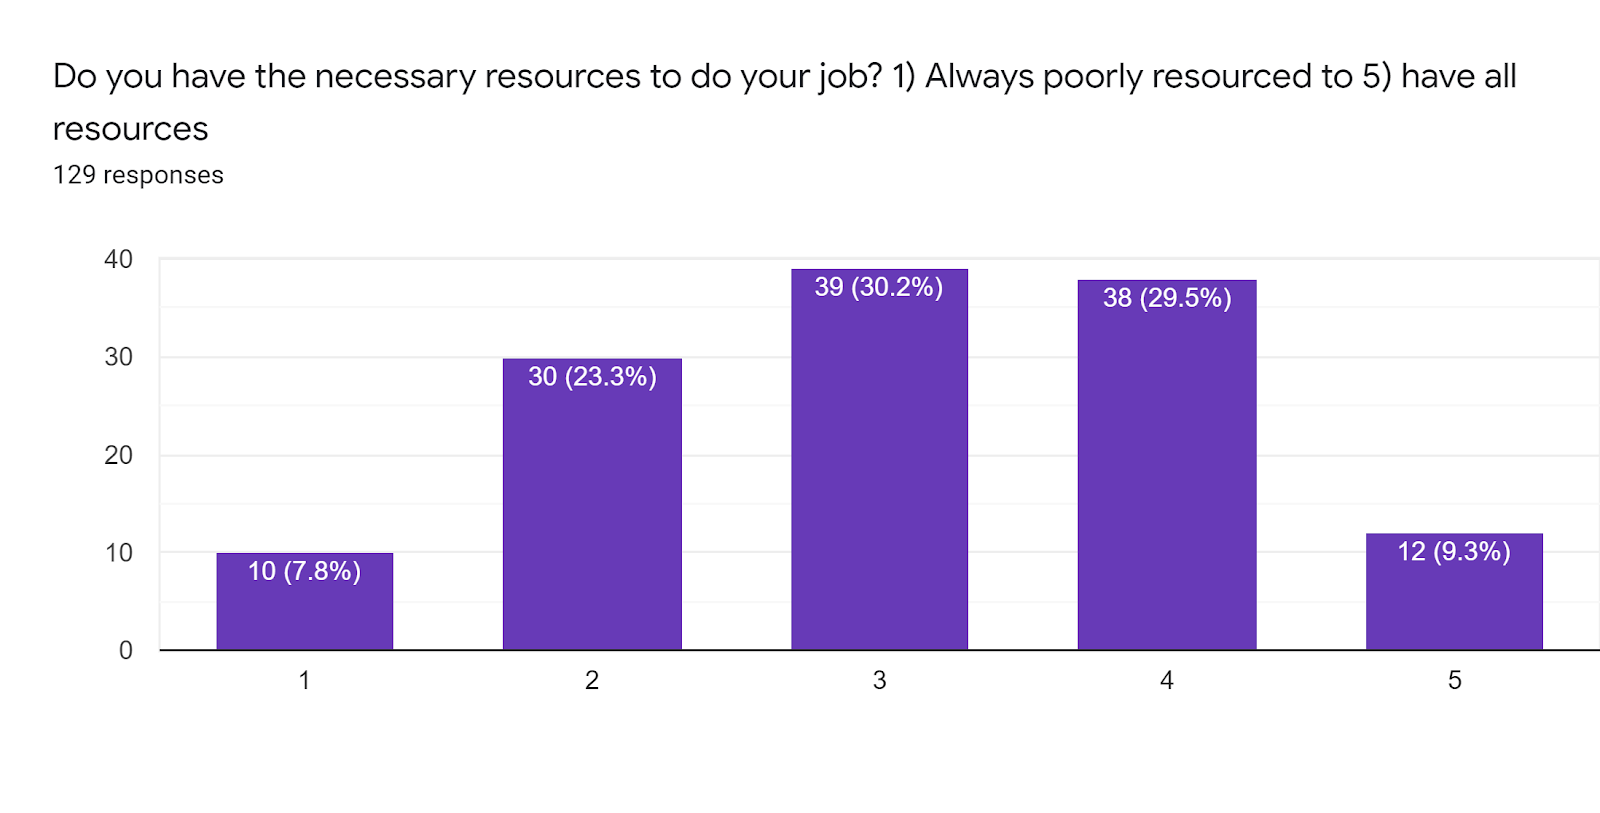 Forms response chart. Question title: Do you have the necessary resources to do your job? 1) Always poorly resourced to 5) have all resources. Number of responses: 129 responses.